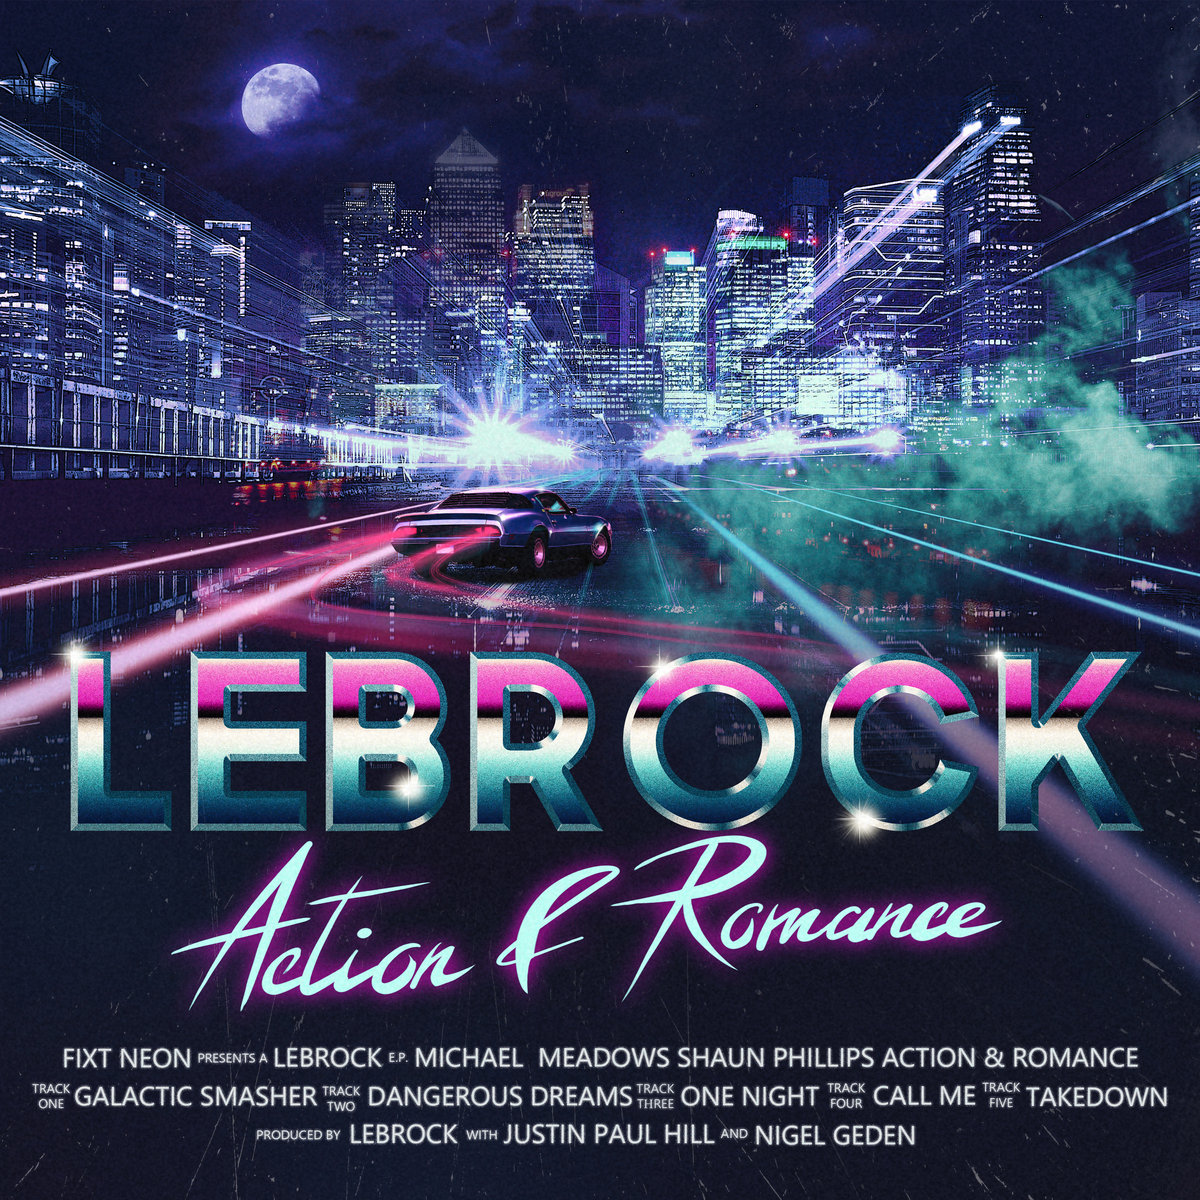 a2063955494 10 - LeBrock - Action & Romance Remastered